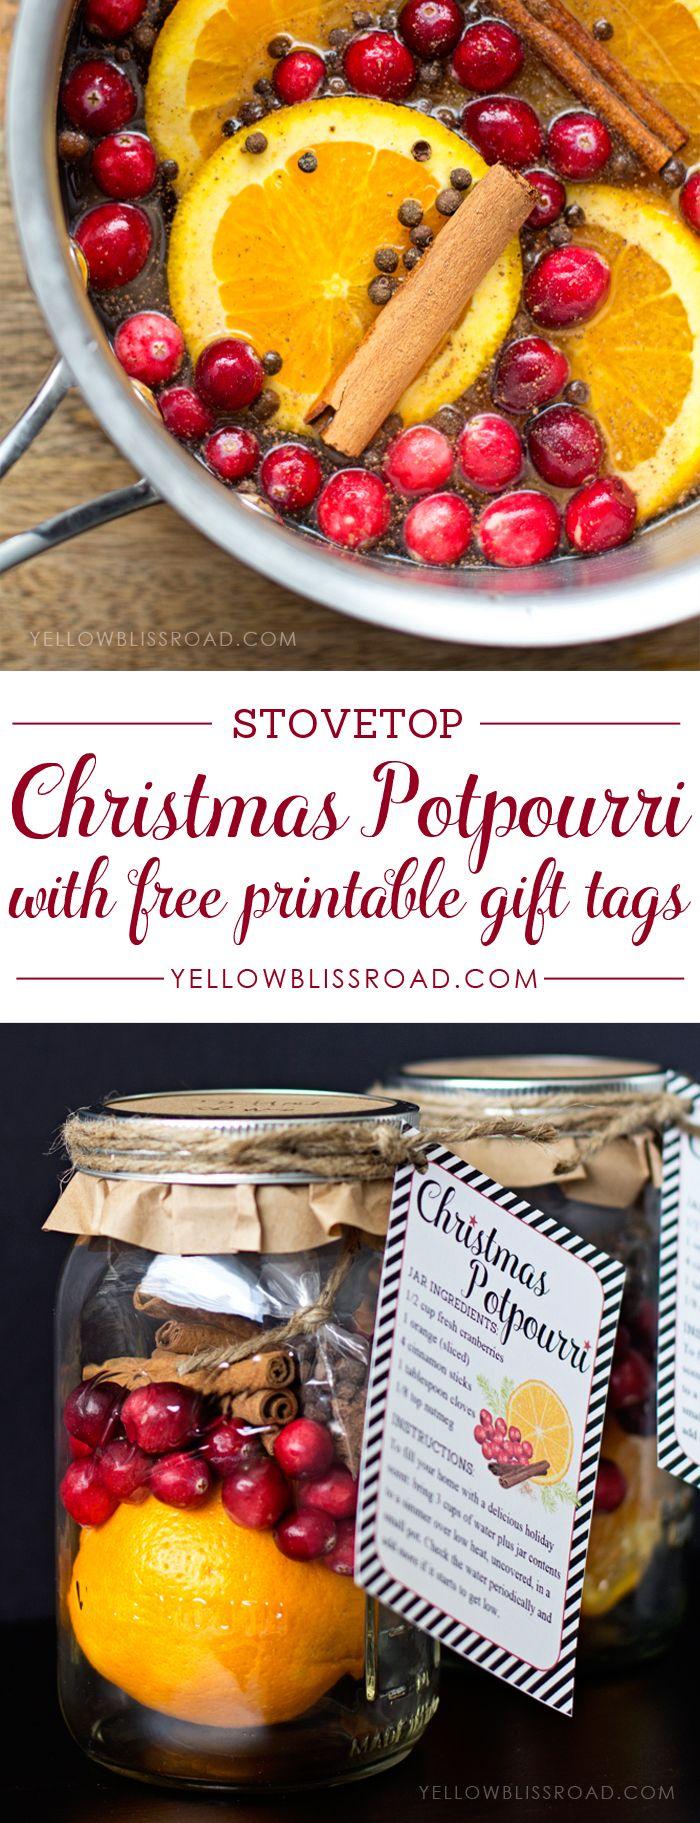 Christmas Potpourri with free printable tag - Such a great diy gift idea!!